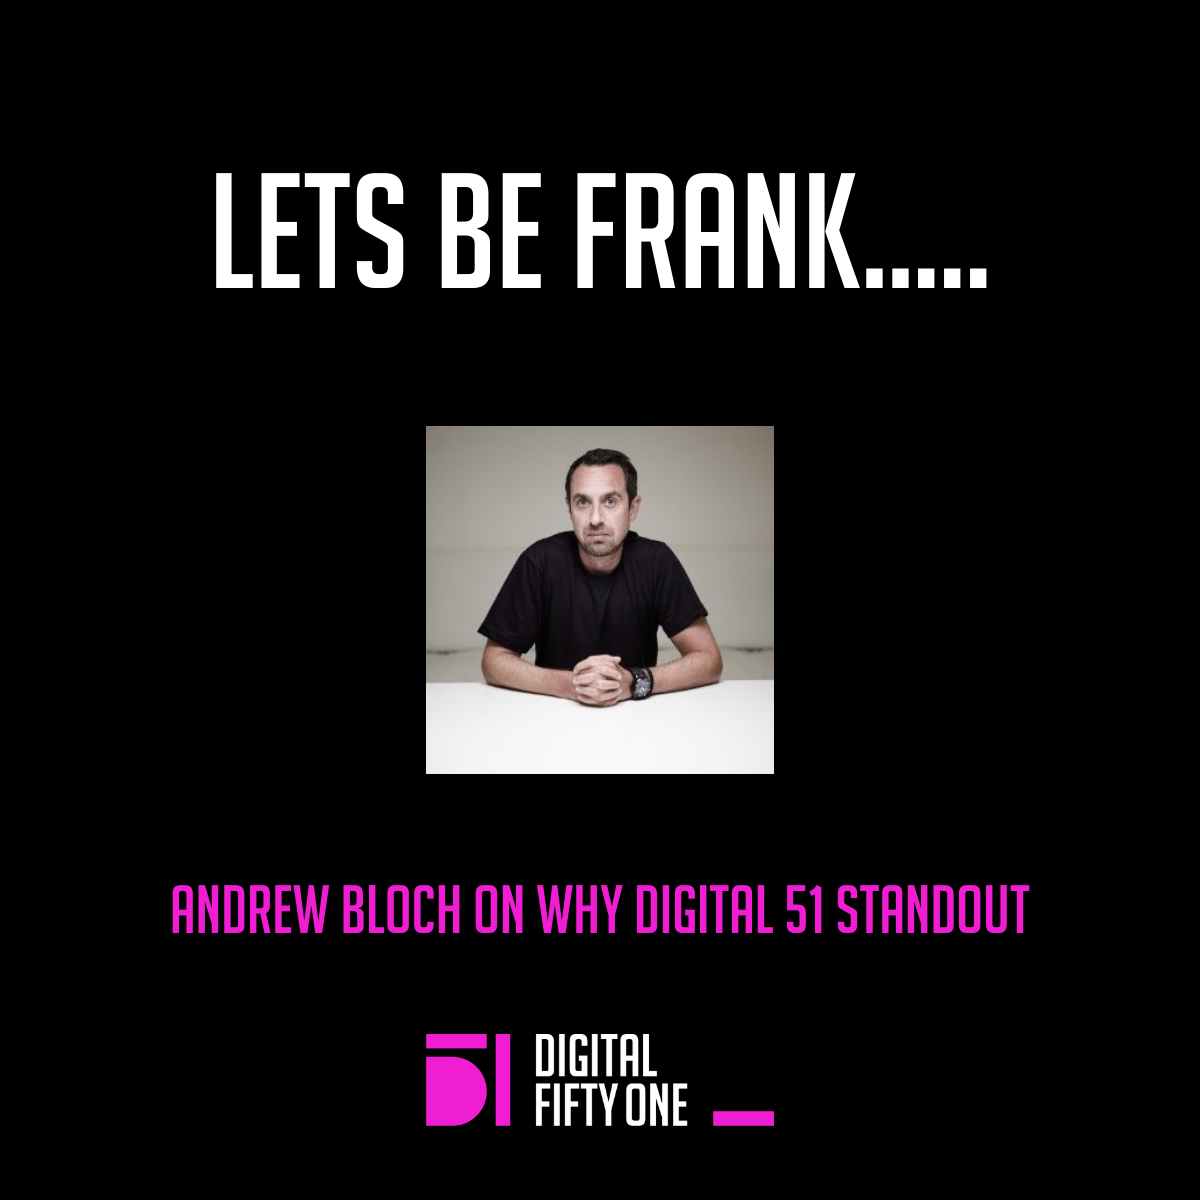 Andrew Bloch talks about why Digital 51 standout from the crowd